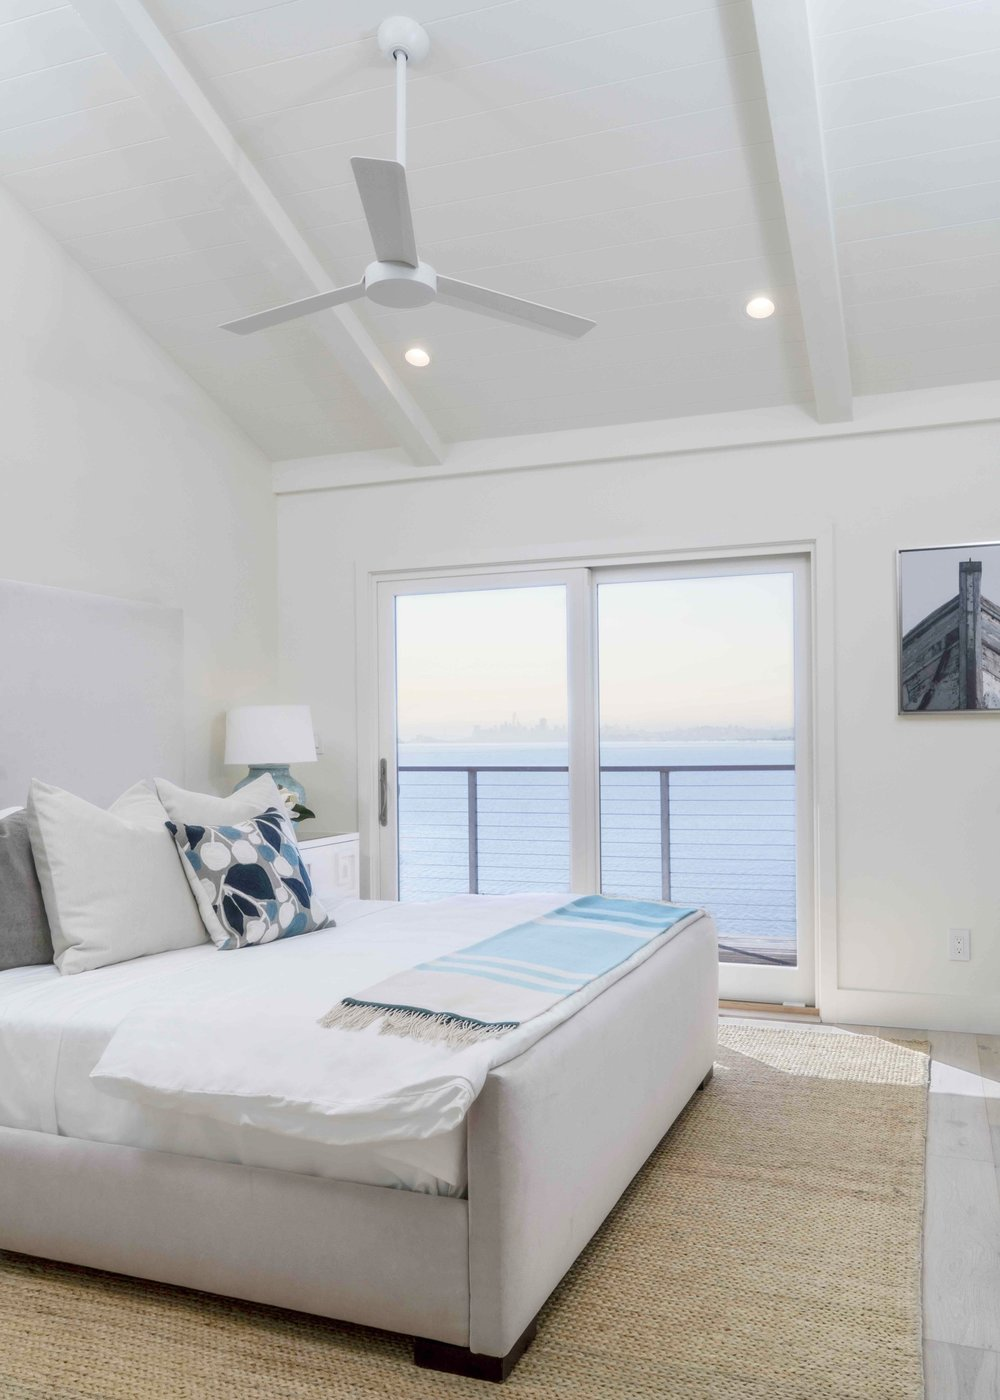 The Pointe at Cove luxury apartments offer water views and private balconies from the master bedroom, as well as spacious walk-in closets.